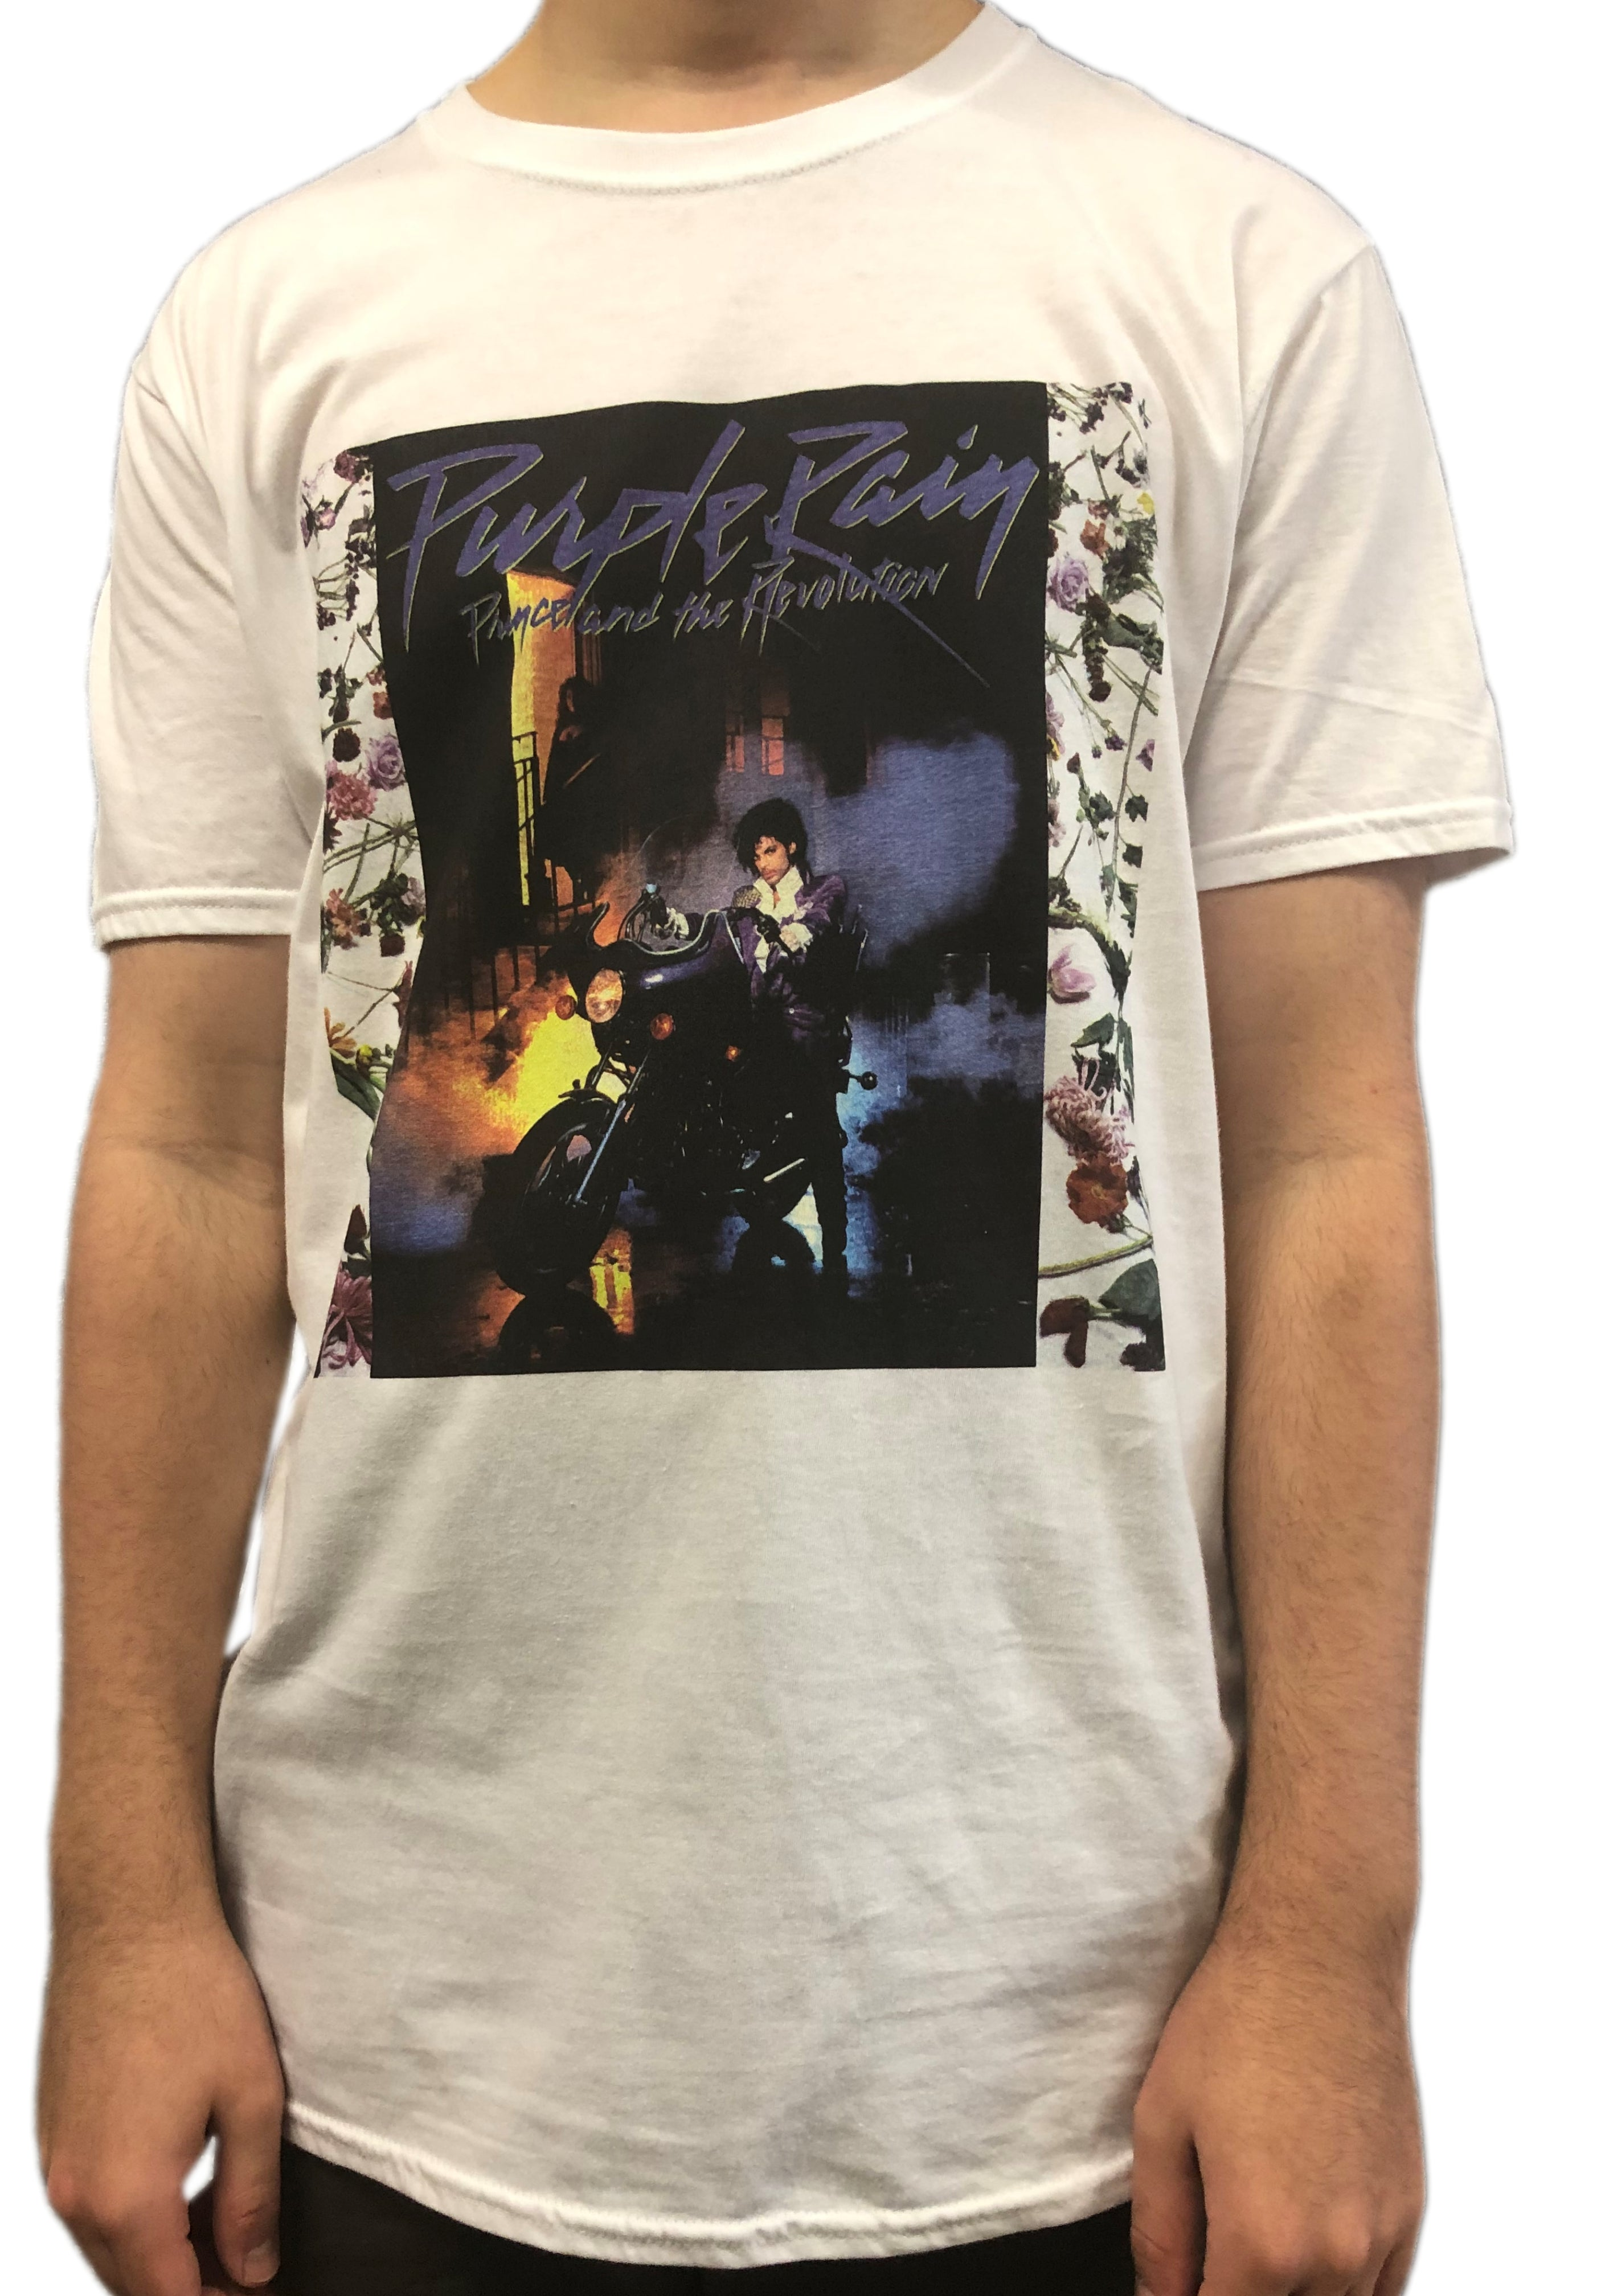 Prince Purple Rain Album Front Cover Unisex Official T-Shirt Brand New